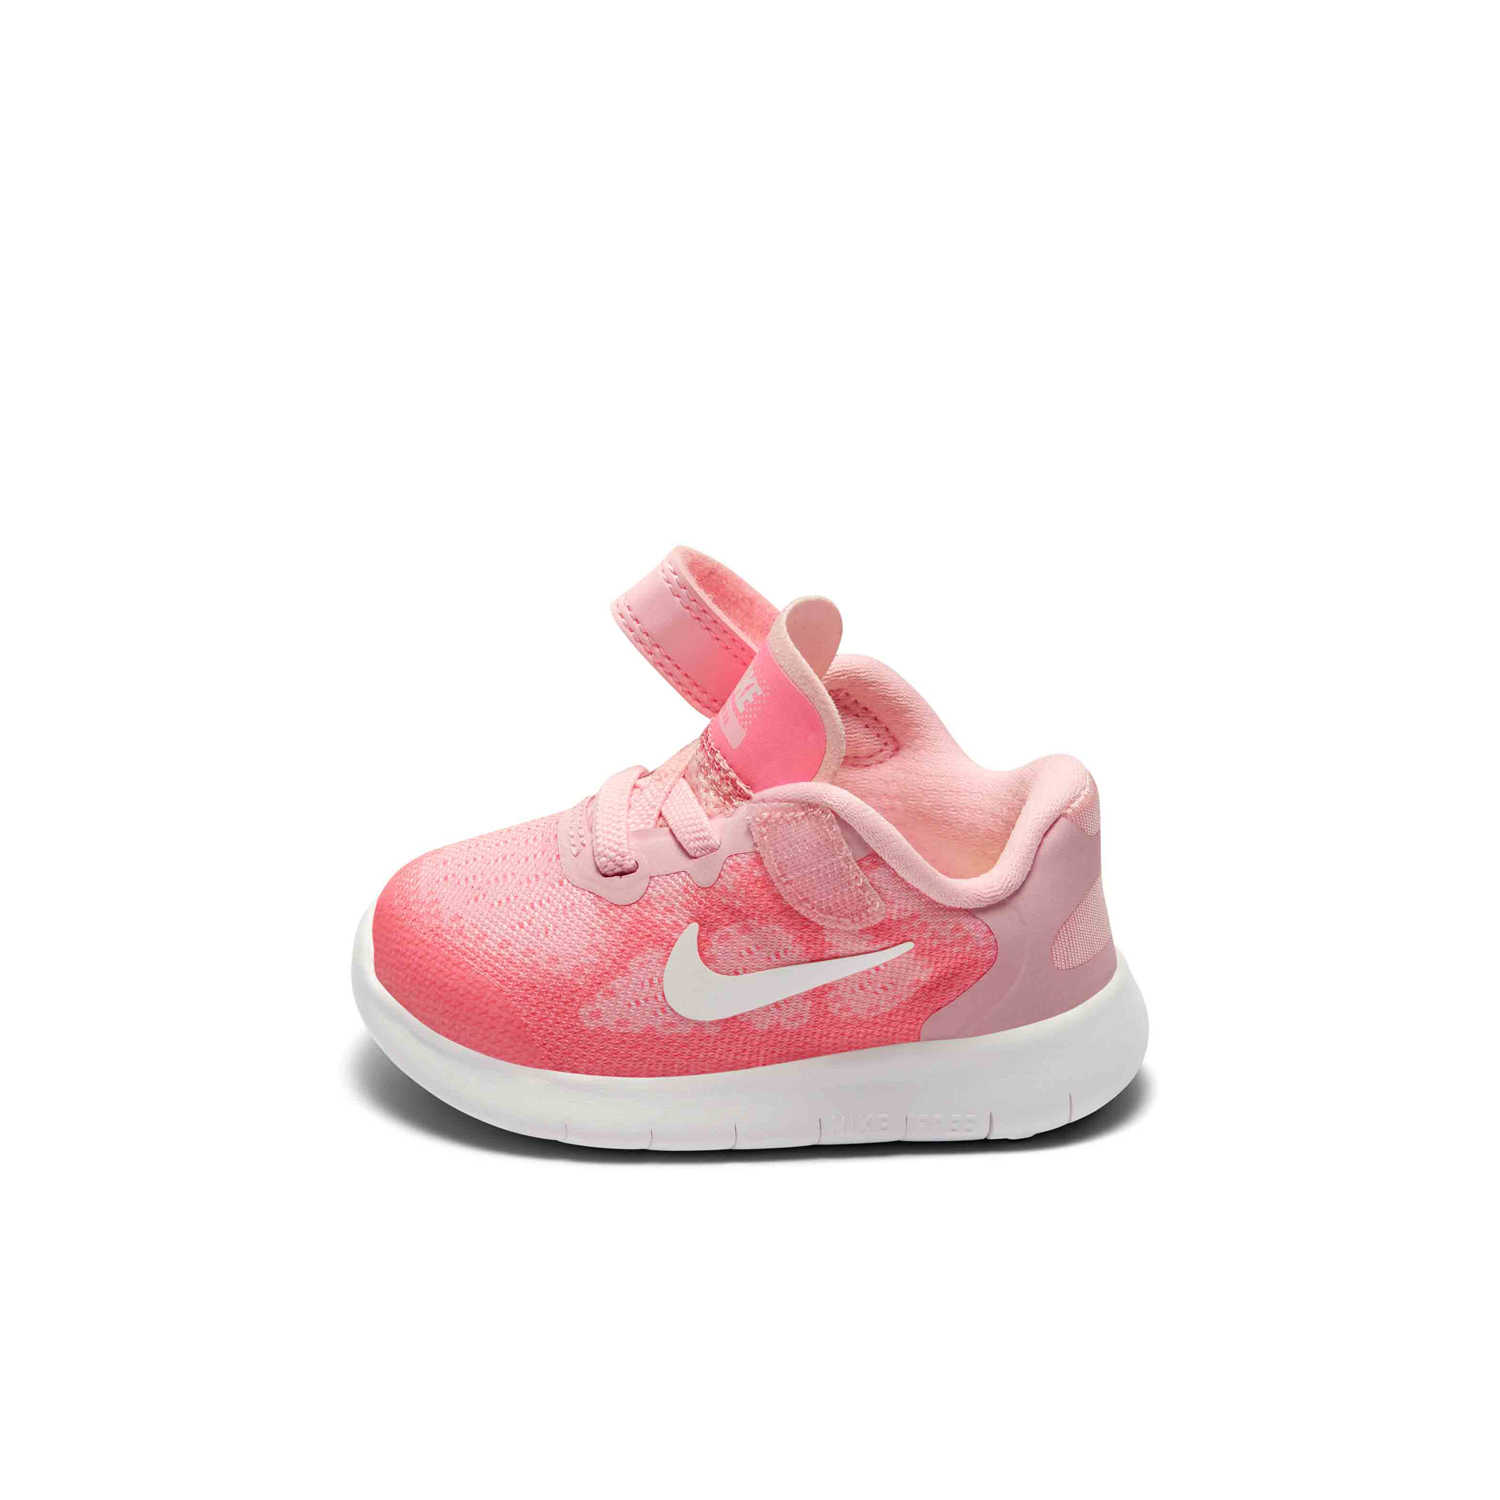 buy popular a198d 96dcf Nike FREE RN Girl Toddler Light Ventilation Magic Subsidies Children Motion  Casual Shoes Running Shoes#904261-602